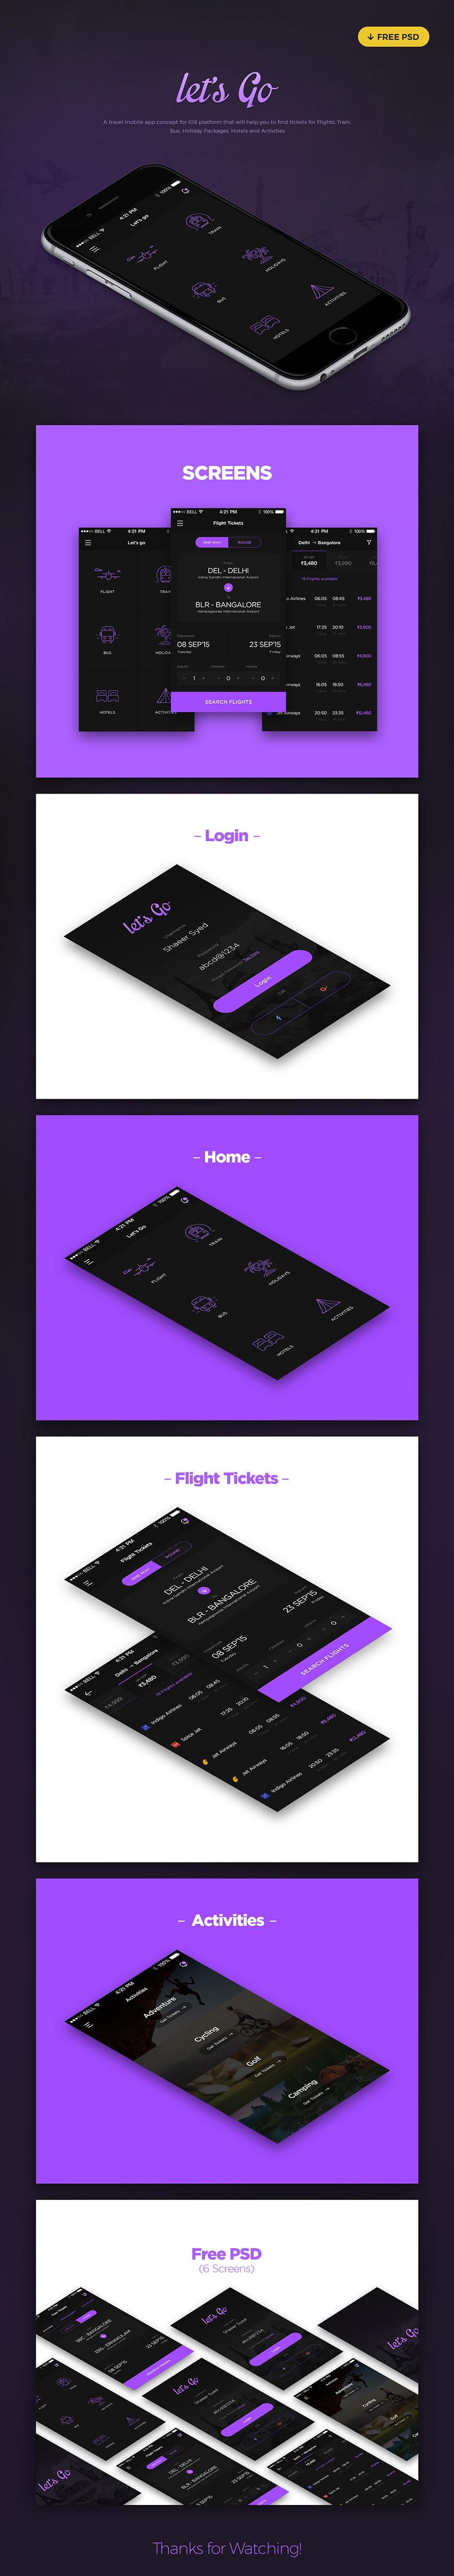 Let's Go Travel App Design UI Kit for PSD